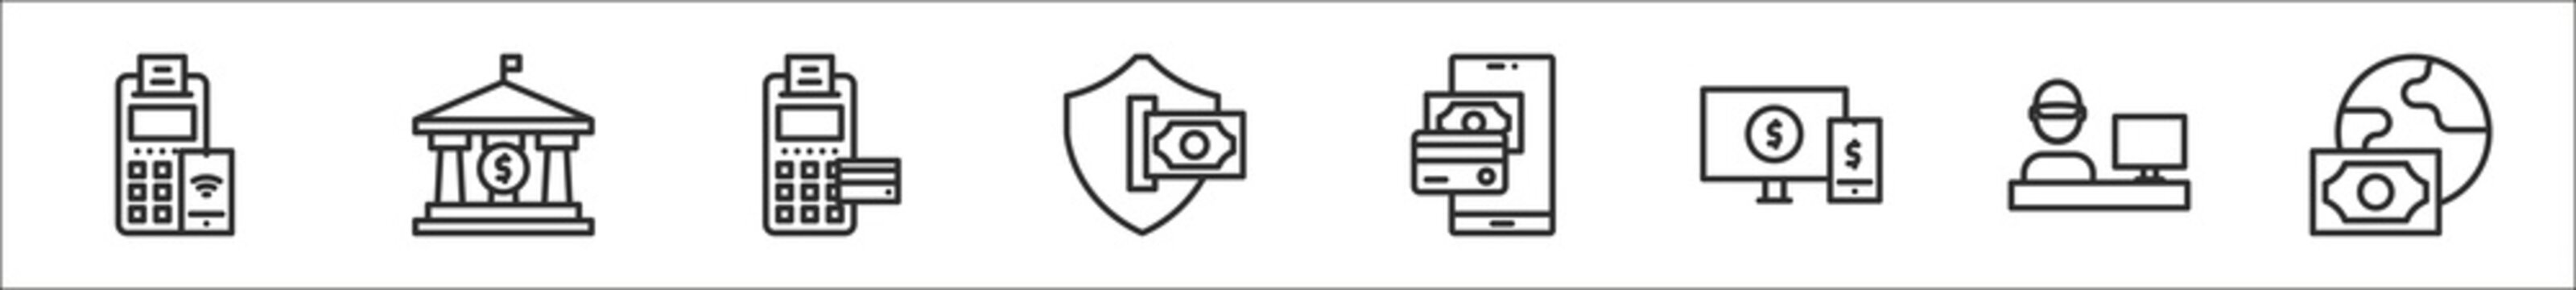 set of 8 payment and bank thin outline icons such as edc, bank, edc, secure payment, online payment, online cashier, method